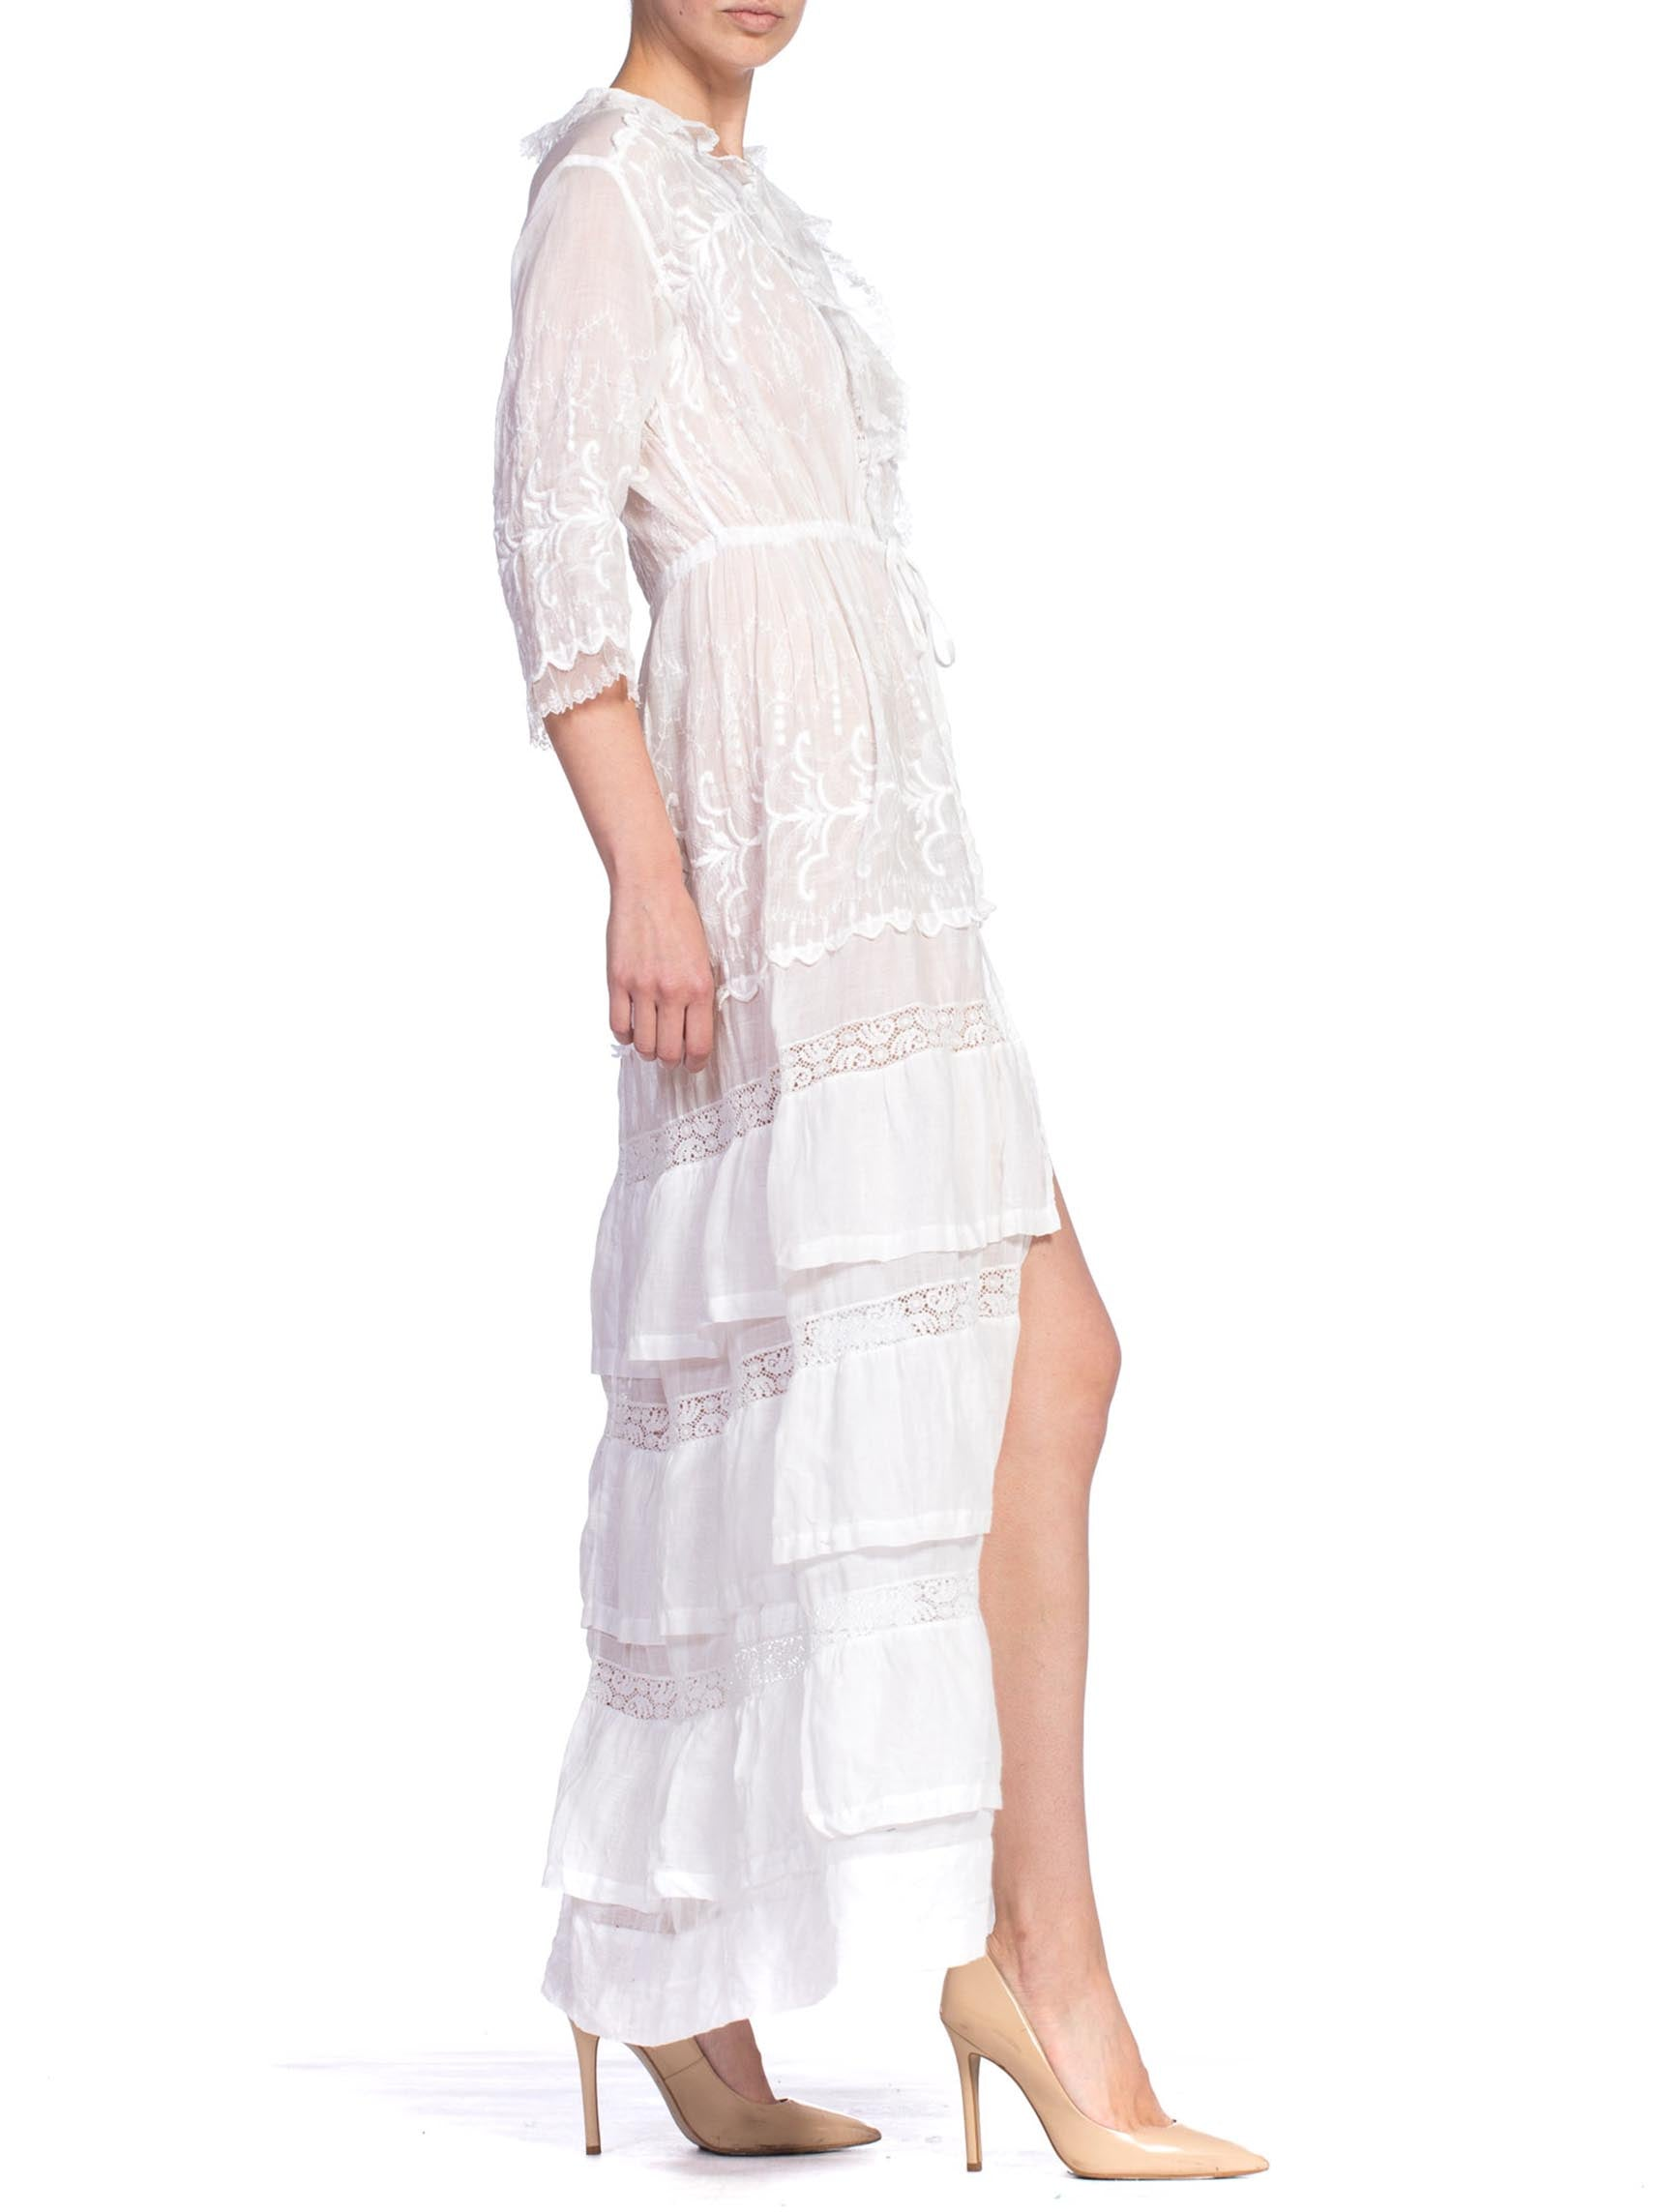 Morphew Collection 1910'S  White Lace Dress